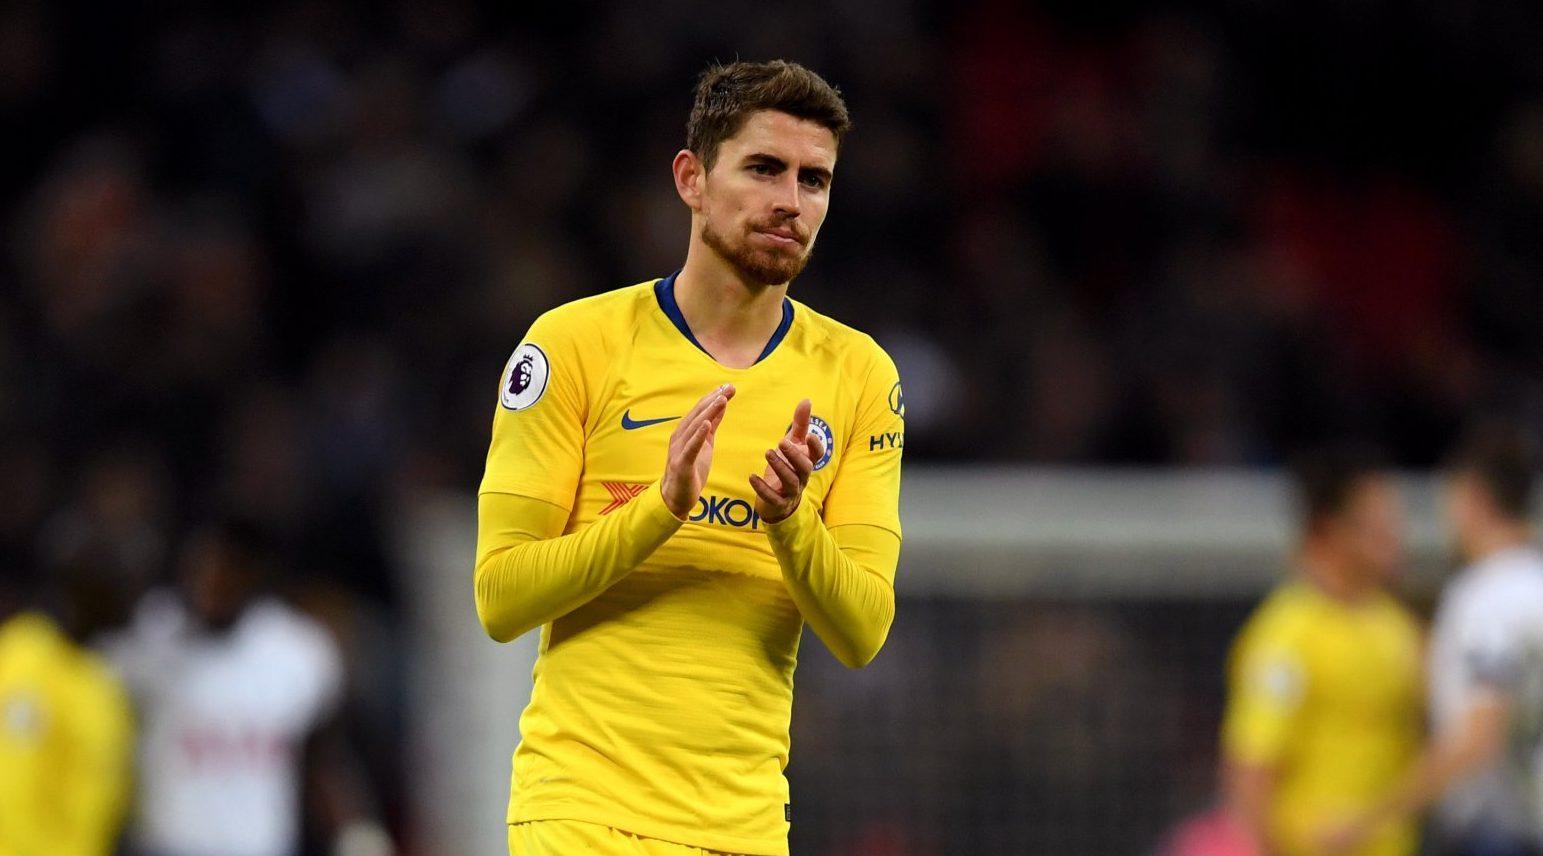 LONDON, ENGLAND - NOVEMBER 24: Jorginho of Chelsea applauds fans after the Premier League match between Tottenham Hotspur and Chelsea FC at Tottenham Hotspur Stadium on November 24, 2018 in London, United Kingdom. (Photo by Darren Walsh/Chelsea FC via Getty Images)